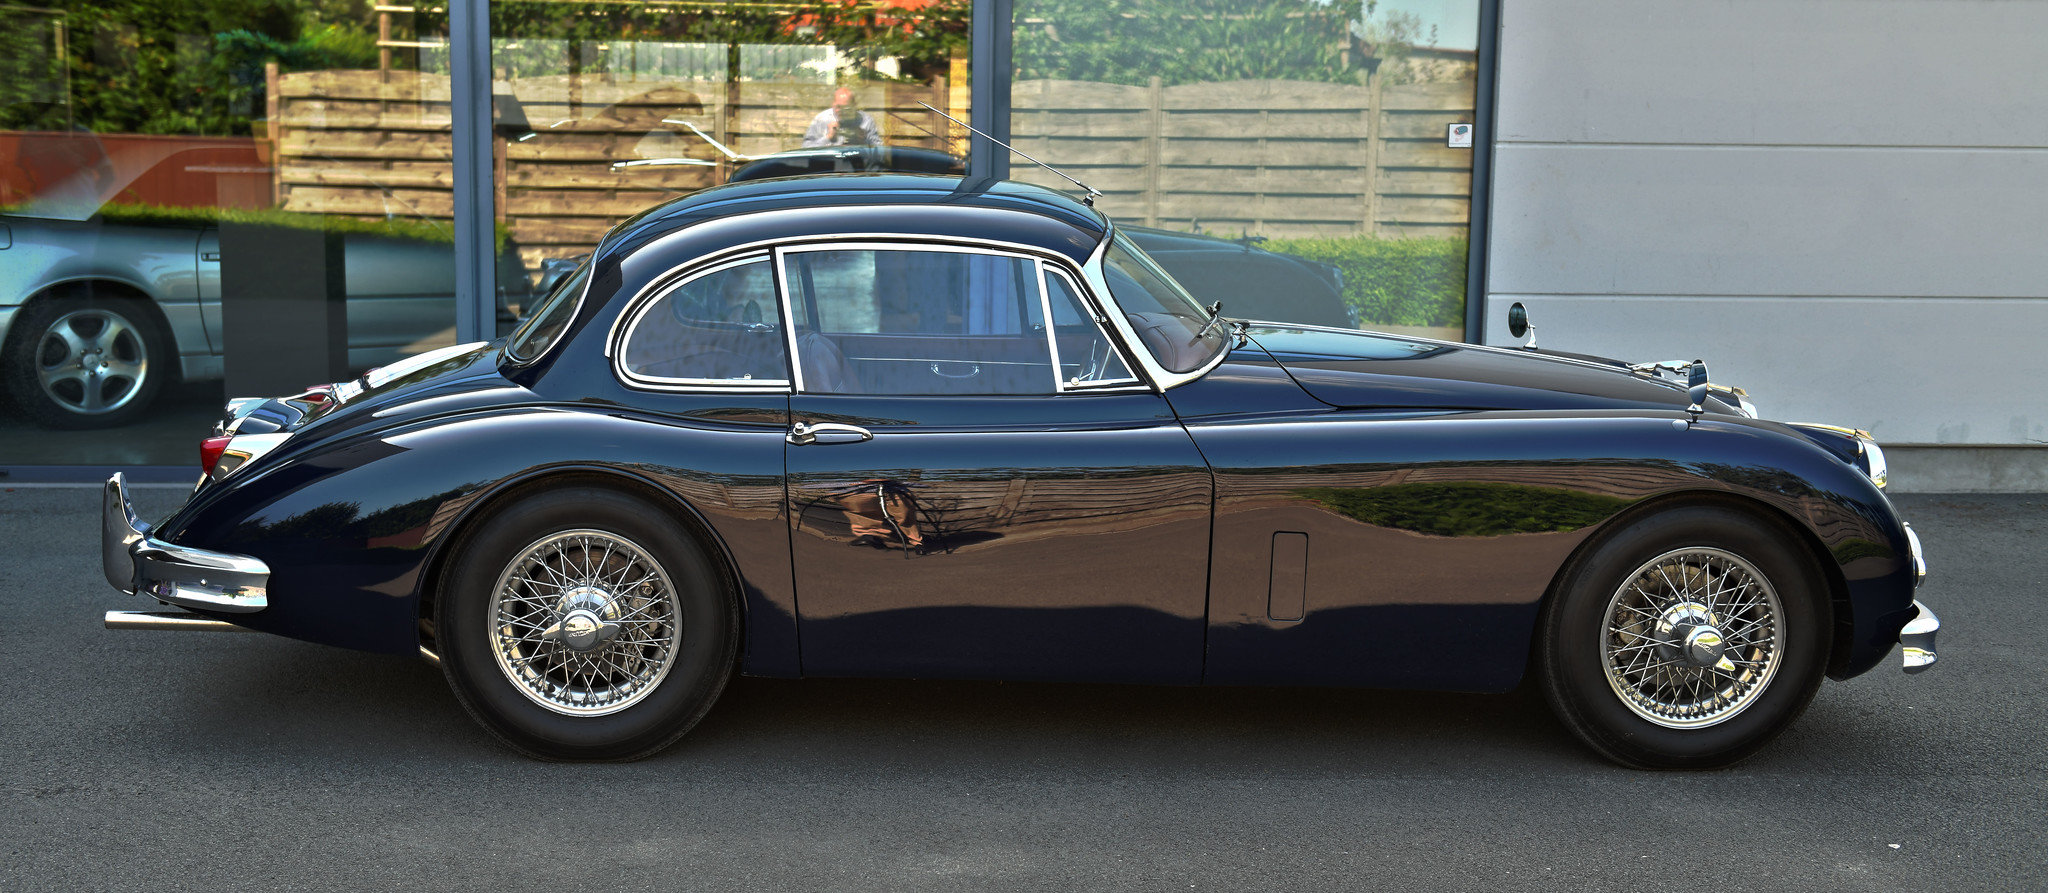 1957 Jaguar XK150 RHD FHC For Sale (picture 2 of 6)